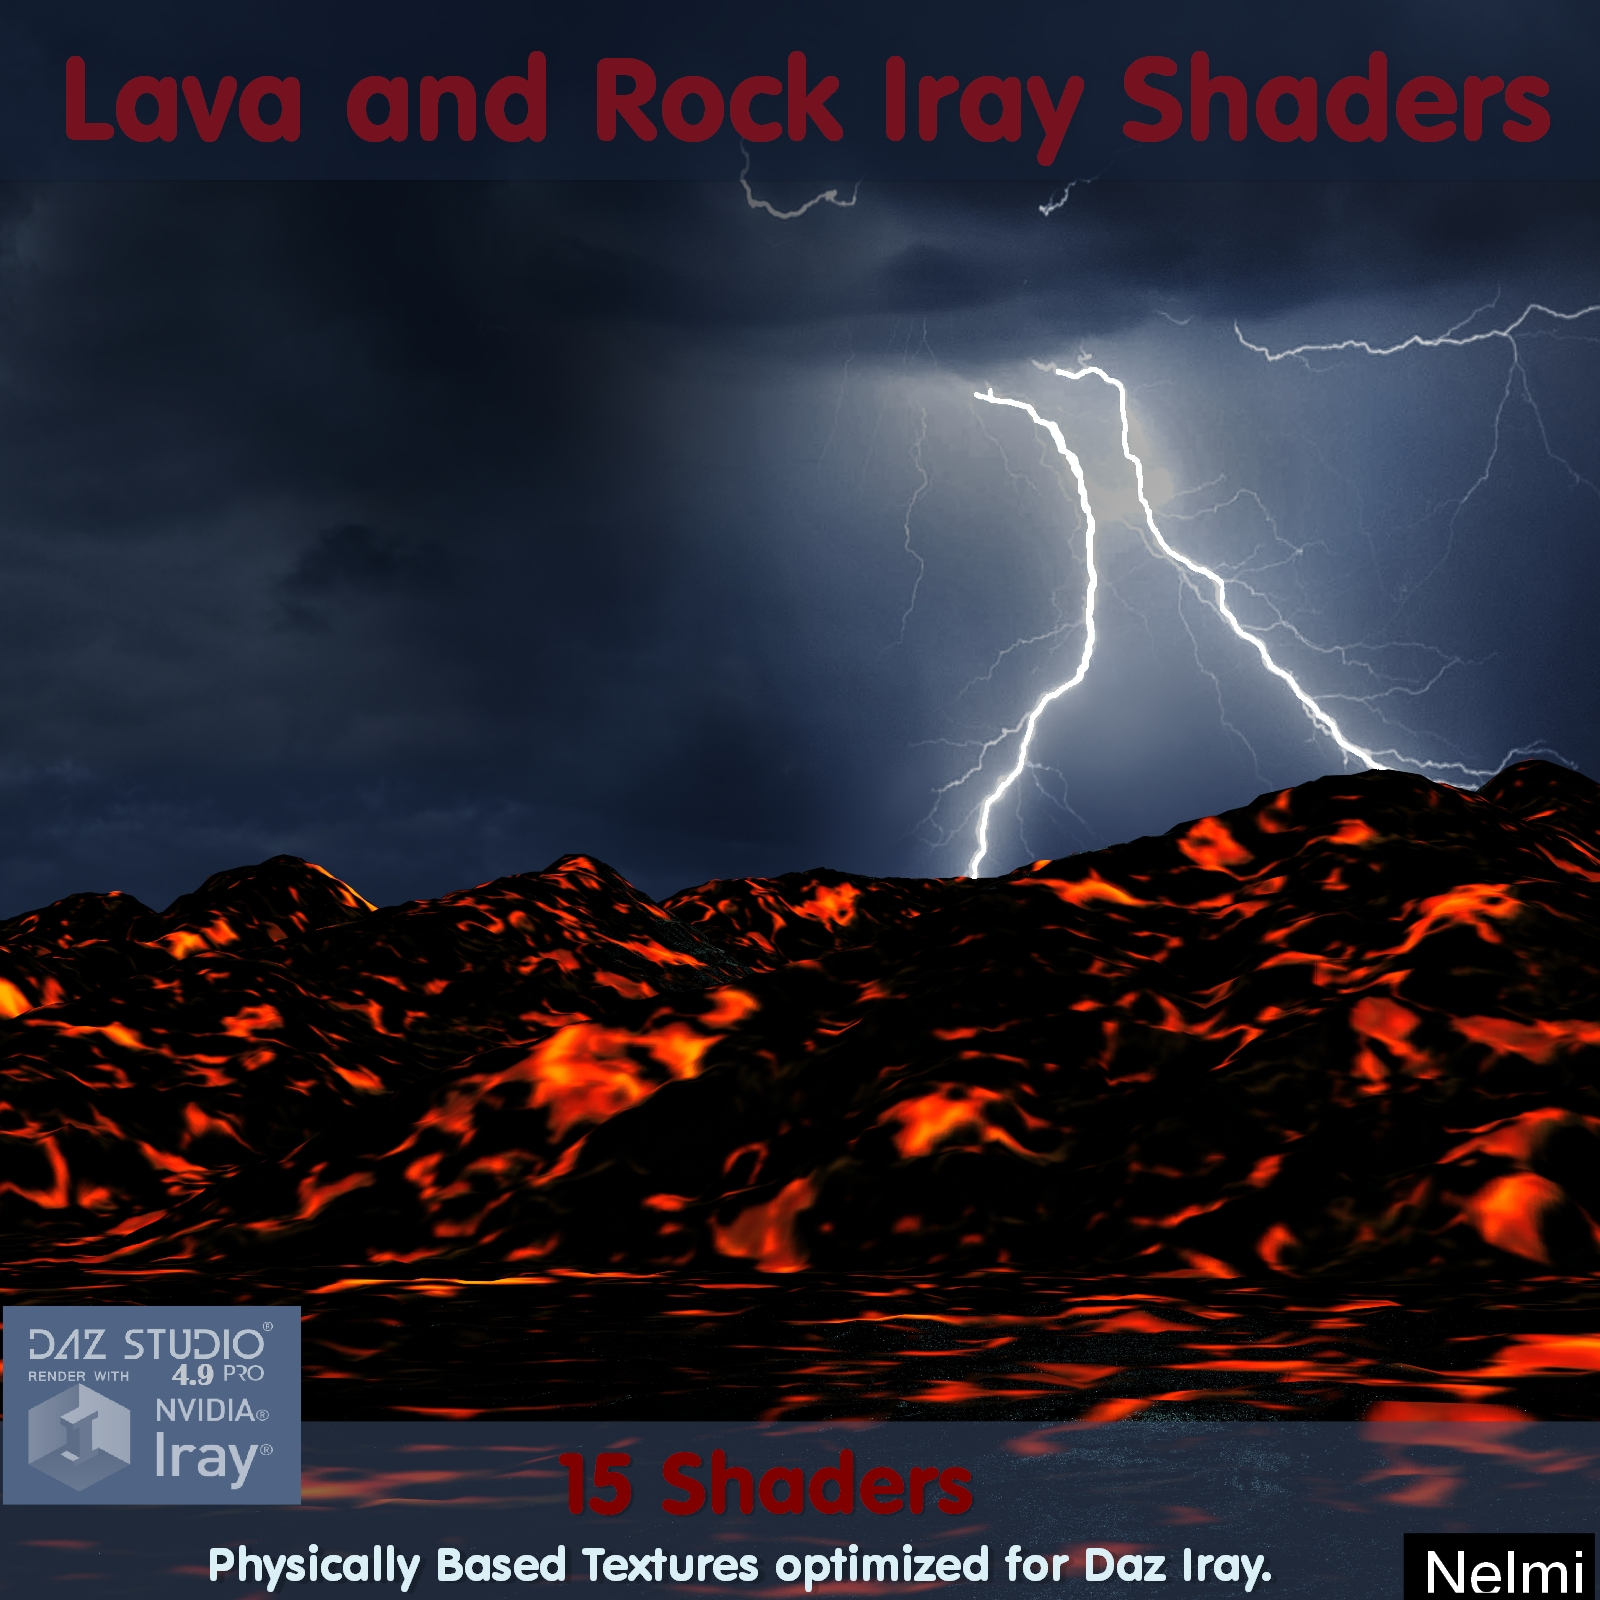 15 Lava and Rock Iray Shaders - Merchant Resource